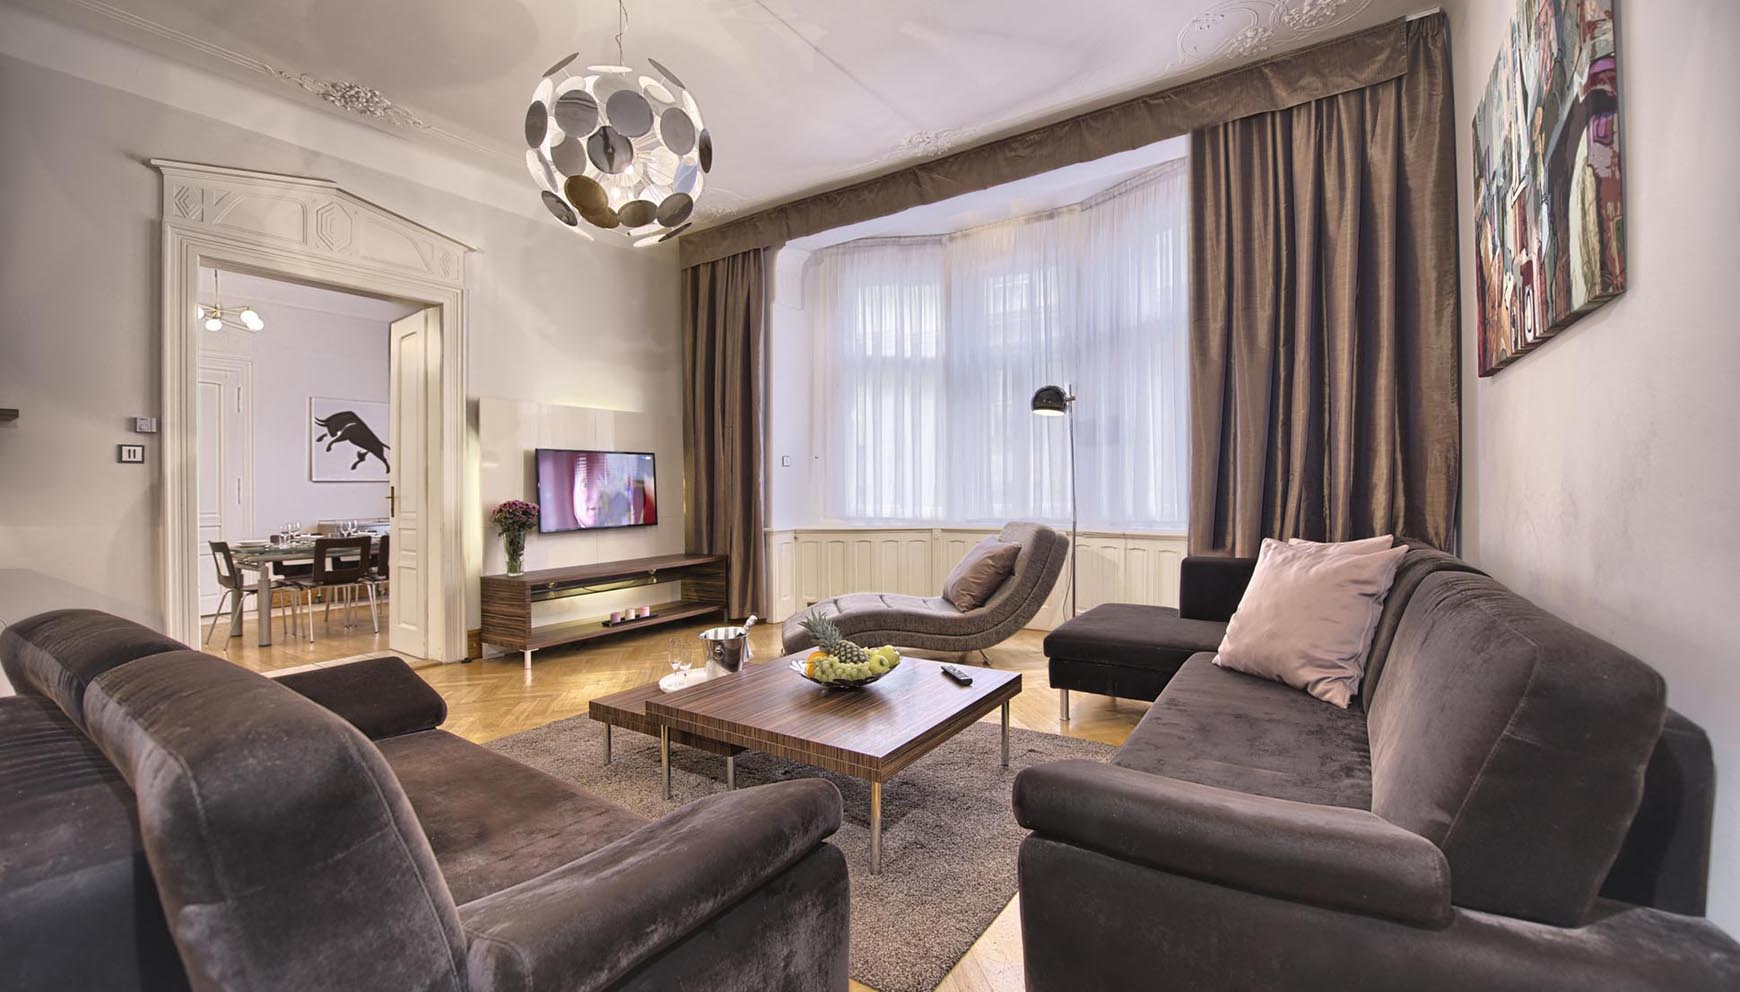 Wonderful Living Room In A Three Bedroom Apartment In Residence Brehova